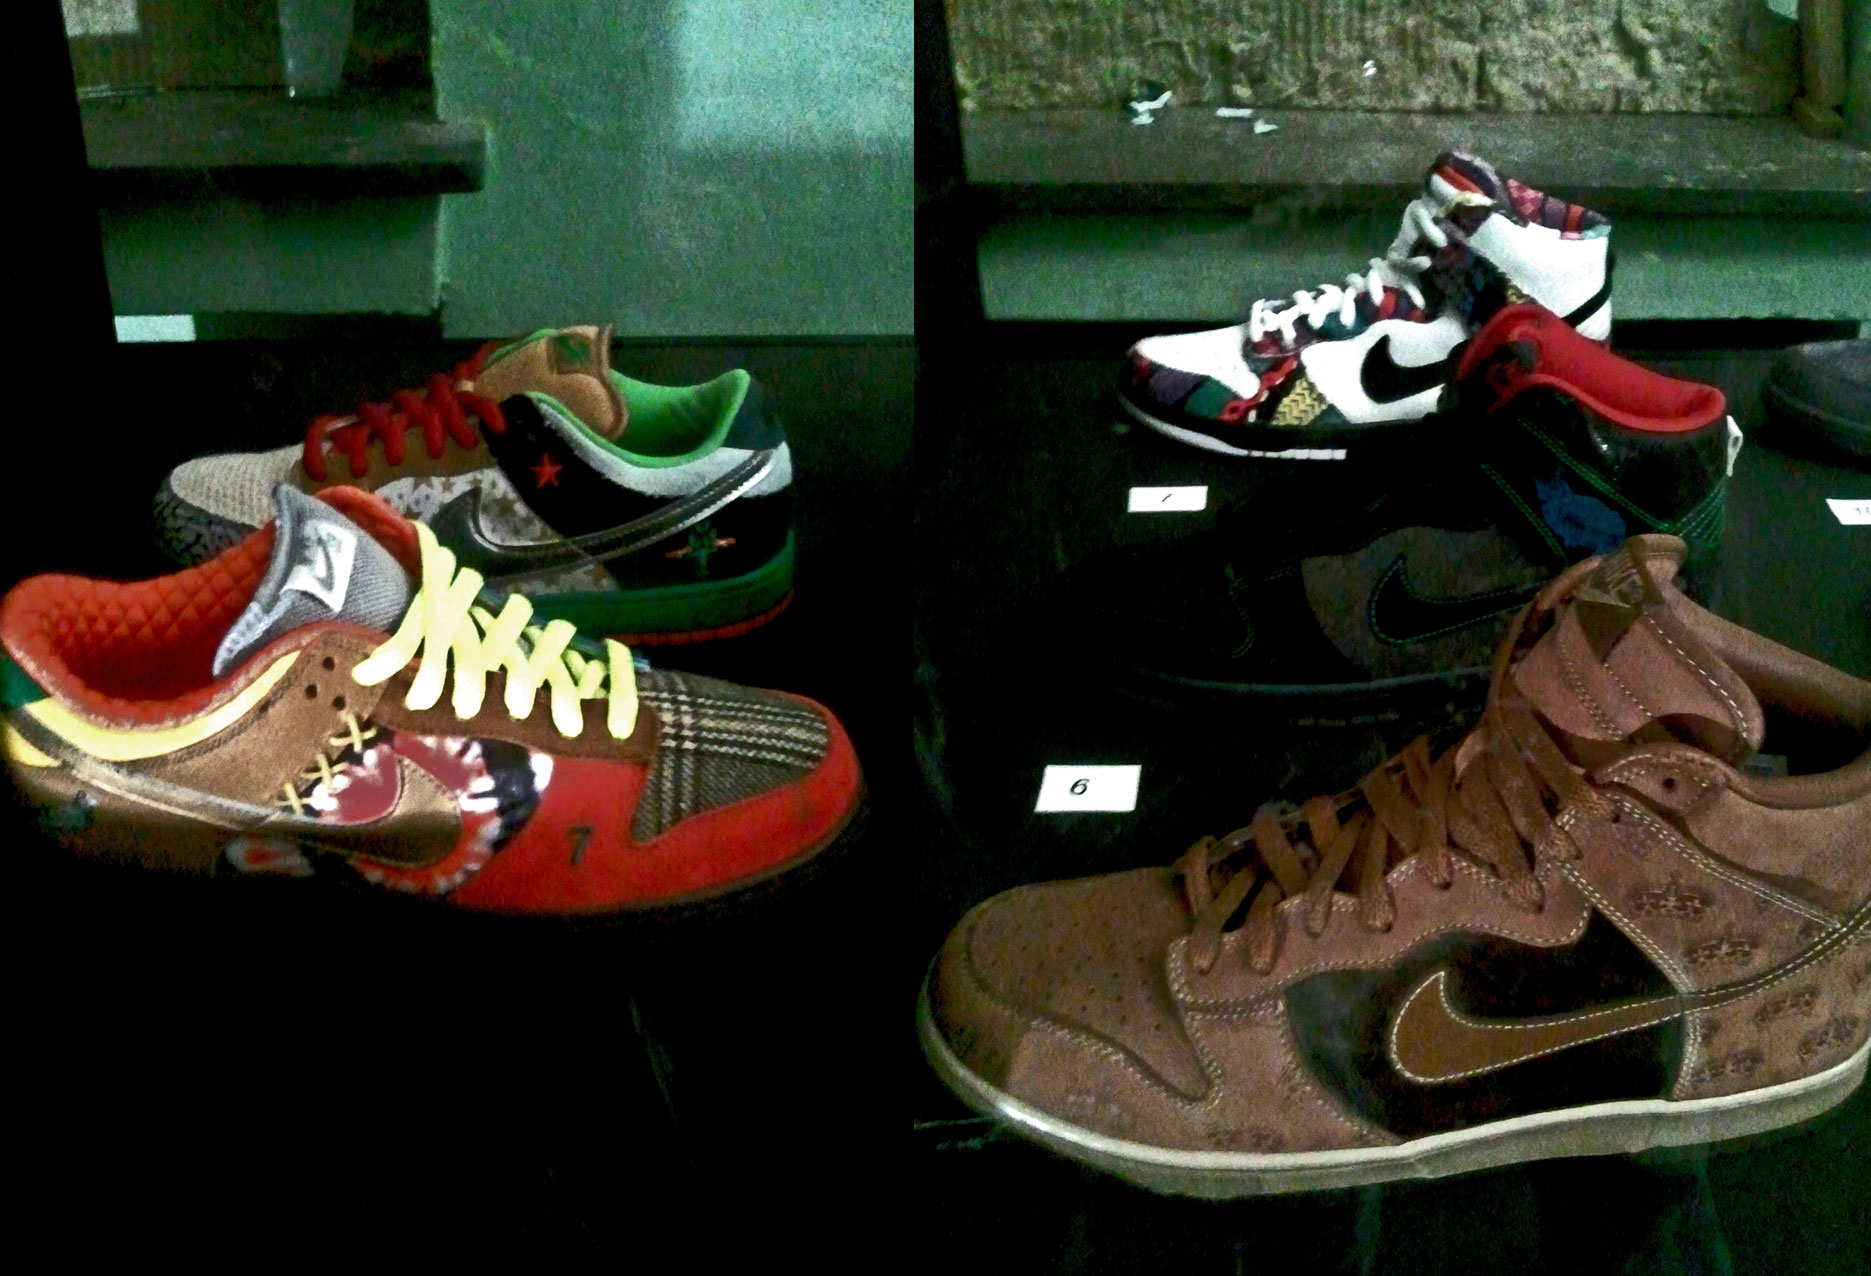 v.l.n.r. unten nach oben: Nike Low Pro What the Dunk (2x), Nike Dunk High Mighty Crown, Dunk High Pro SB Twin Peaks, Dunk High Pro SB Huxtable 